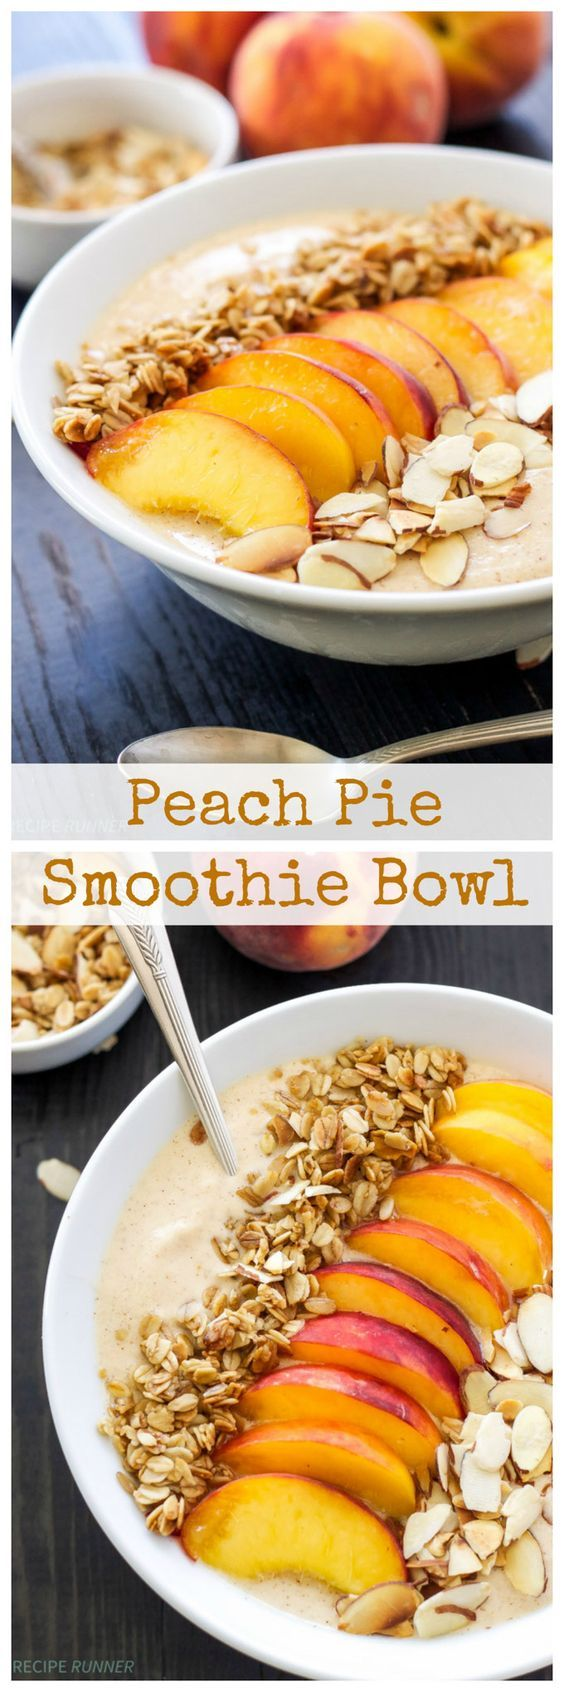 Peach Pie Smoothie Bowl  Pour your smoothie into a bowl and cover it with delicious peach pie inspired toppings!